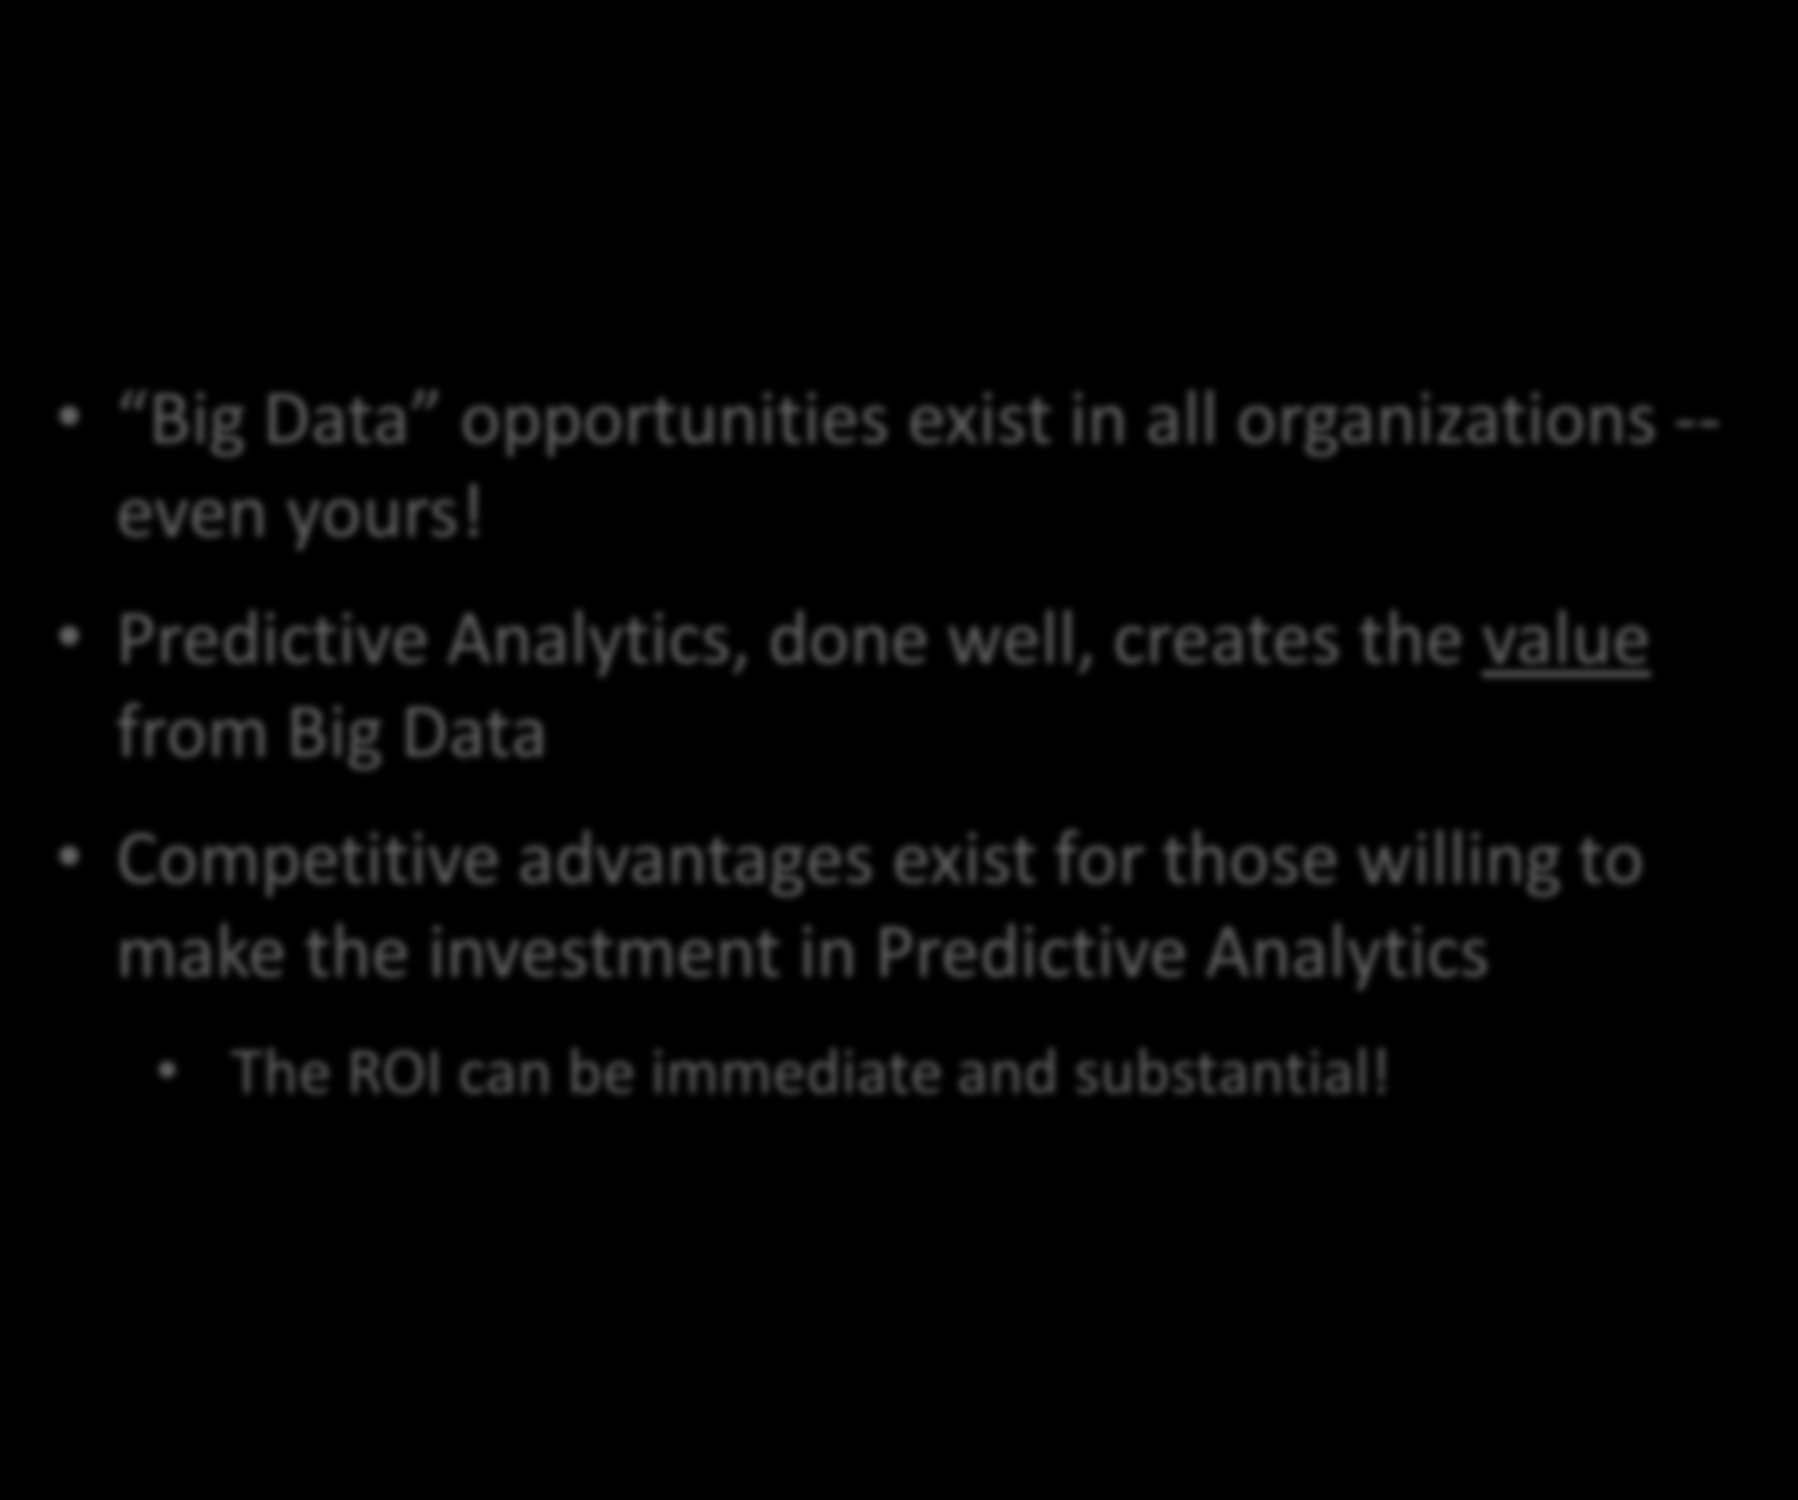 Conclusions Big Data opportunities exist in all organizations -- even yours!